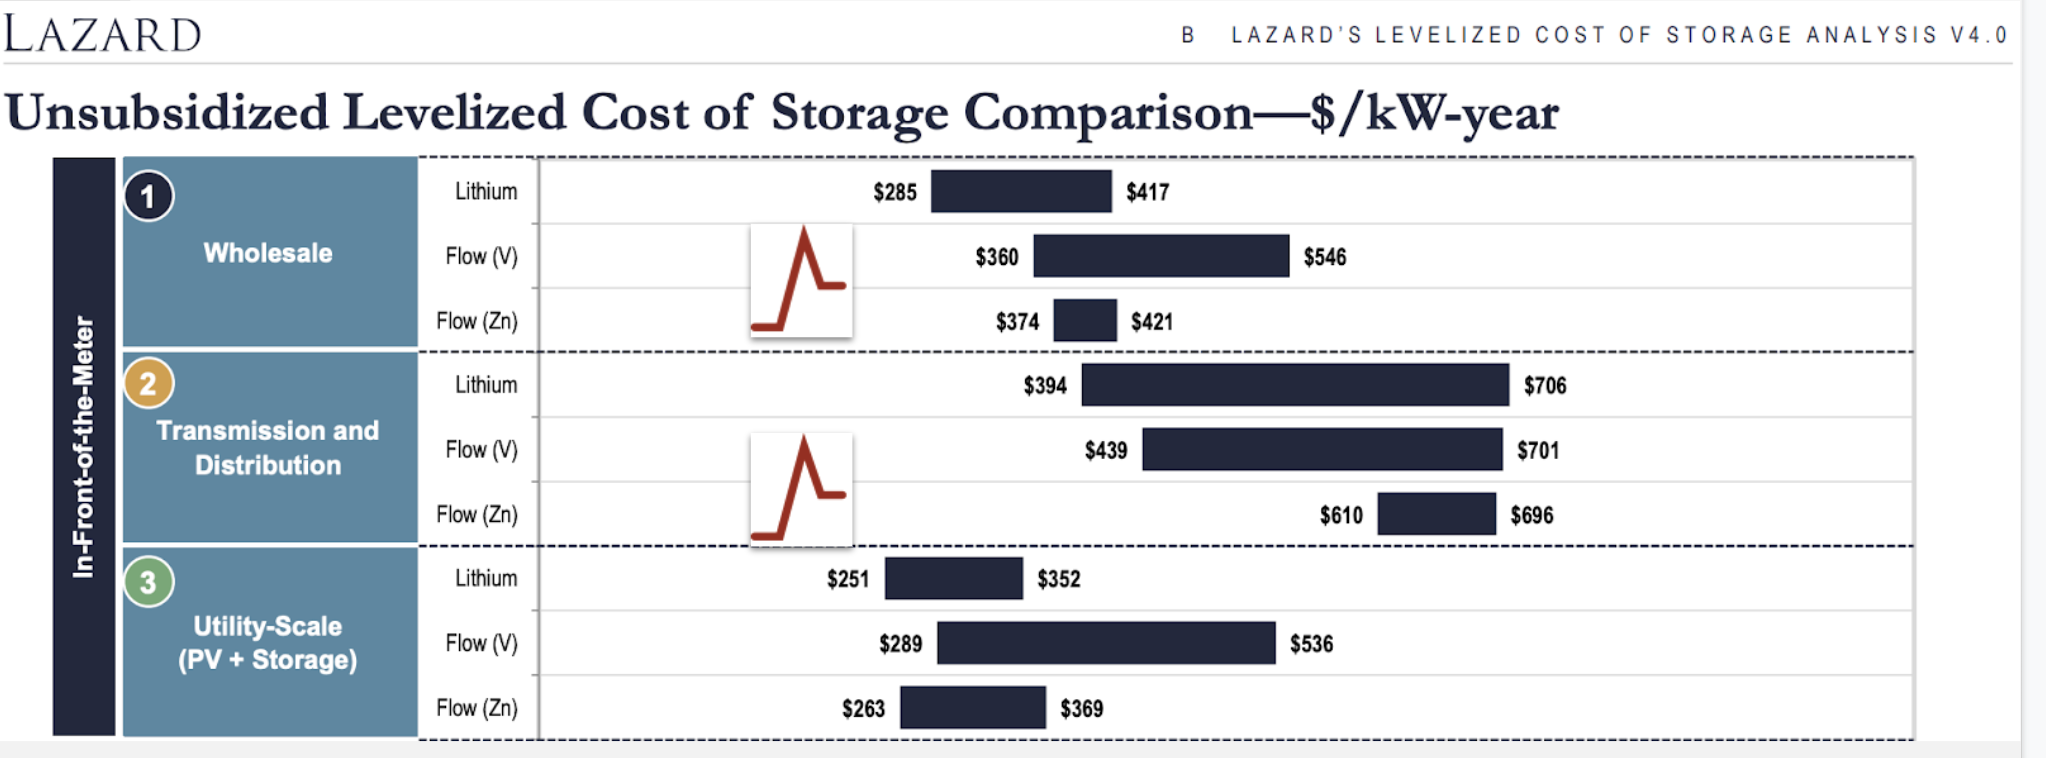 Lazard unsubsidized levelized cost of storage with Agora's technology annotated